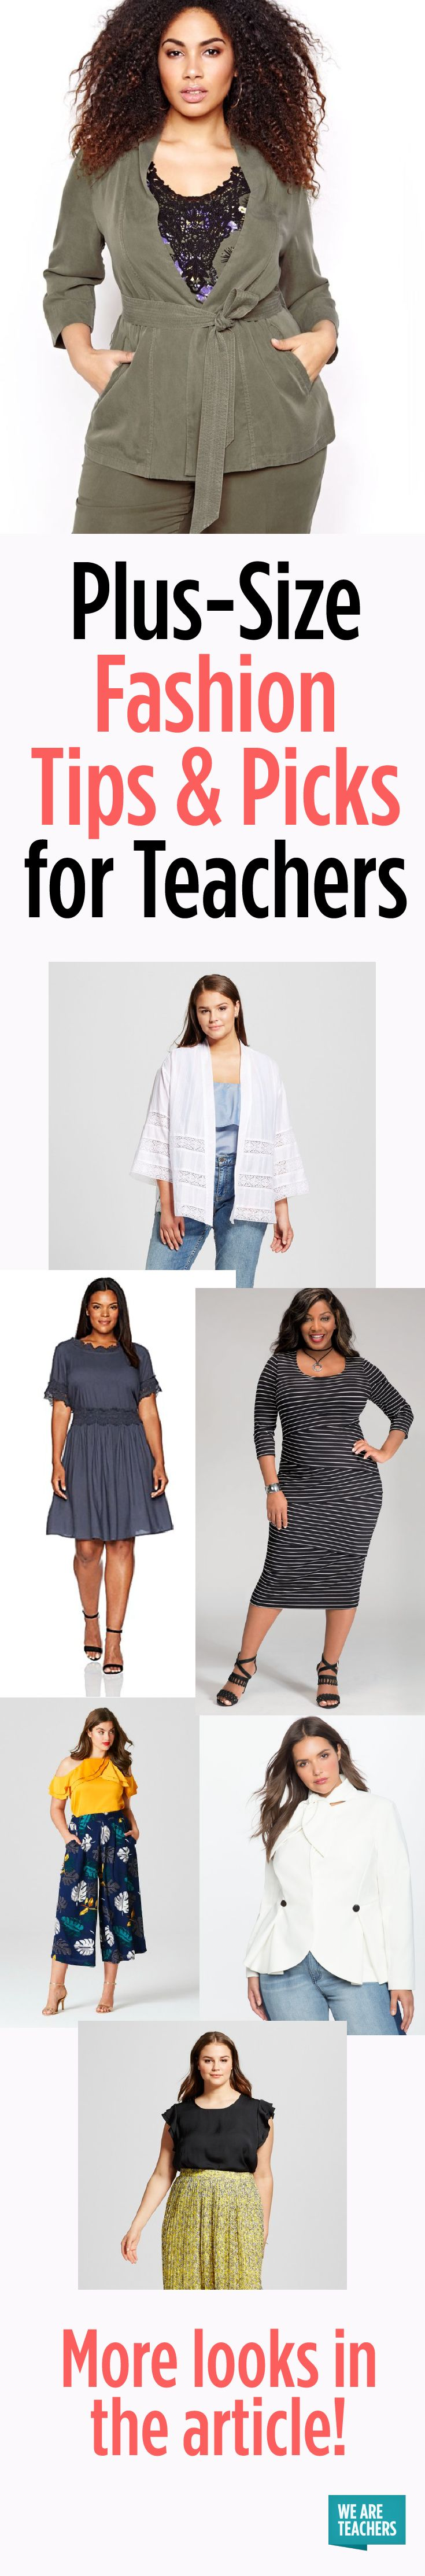 Plus-Size Fashion Tips and Picks for Teachers  The Curvy Fashionista, Marie Denee, shares with her plus size teacher fashion picks for in the classroom and outside of it!